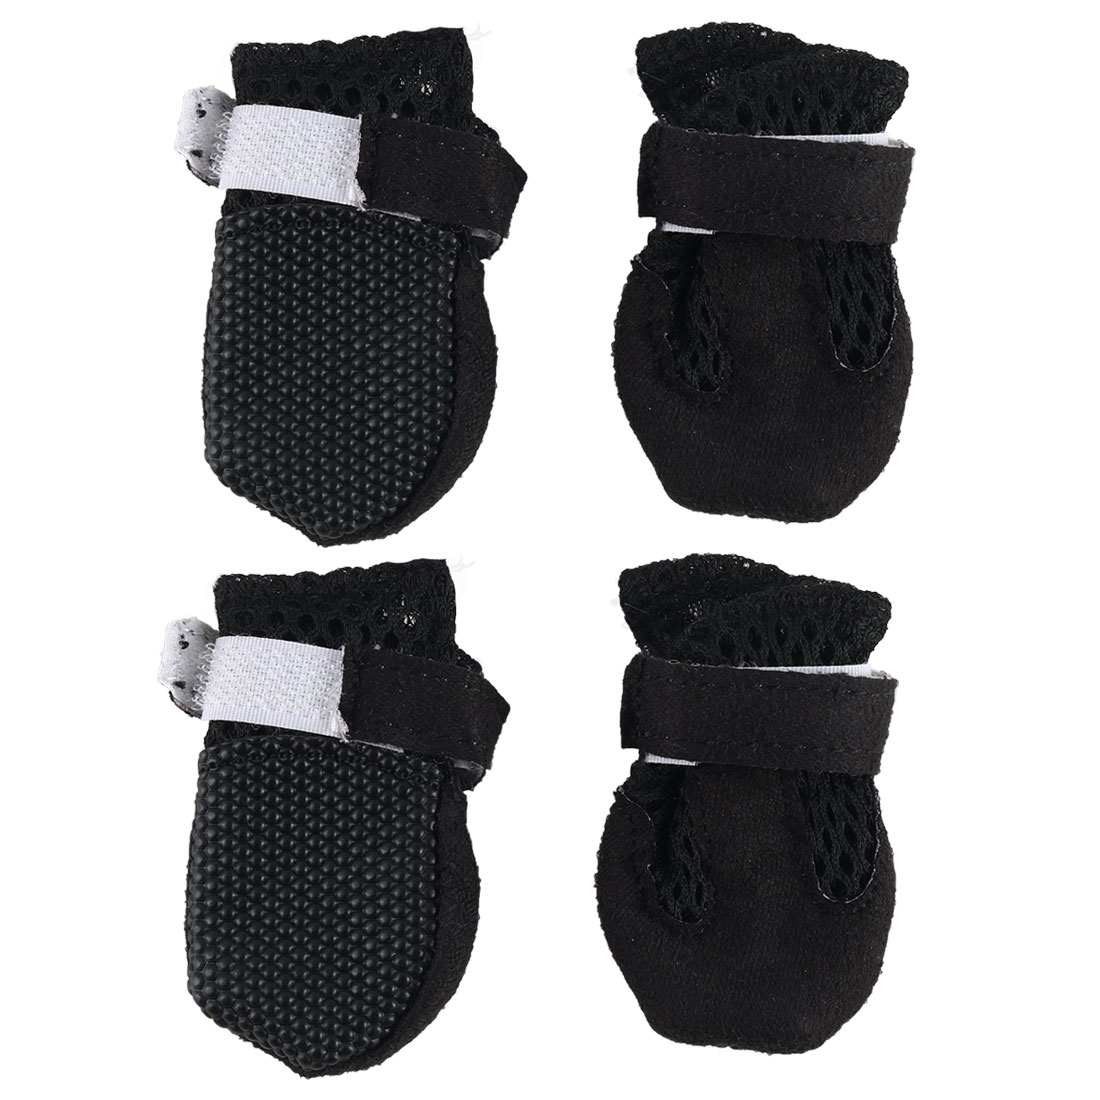 Dog Shoes Pet Boot Wear Resistant Breathable Hiking Paw Protector Black 4pcs, XL